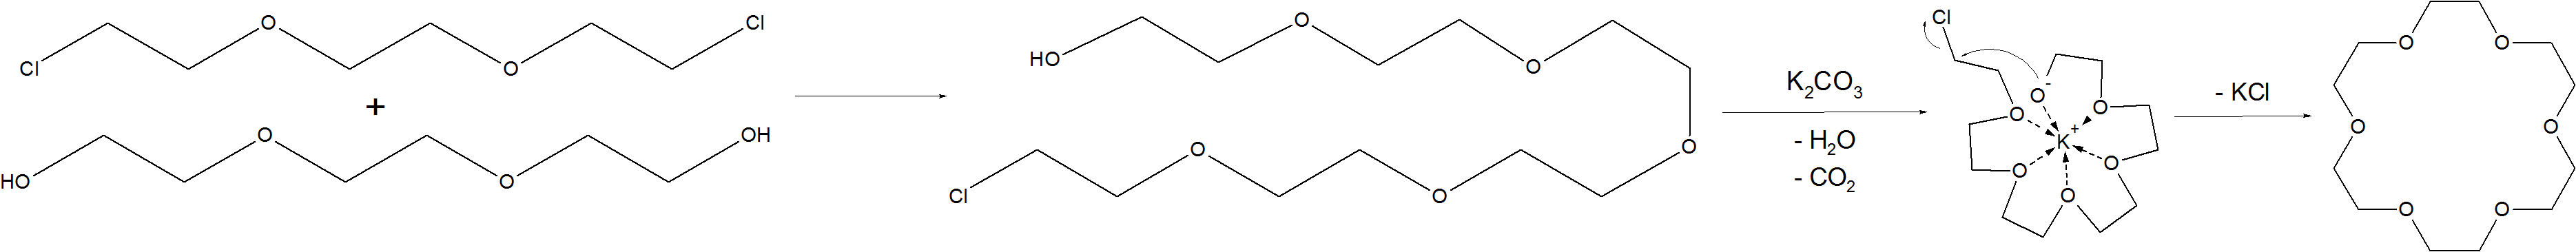 File:Reaction of template synthesis of 18-Crown-6.png - Wikimedia ...